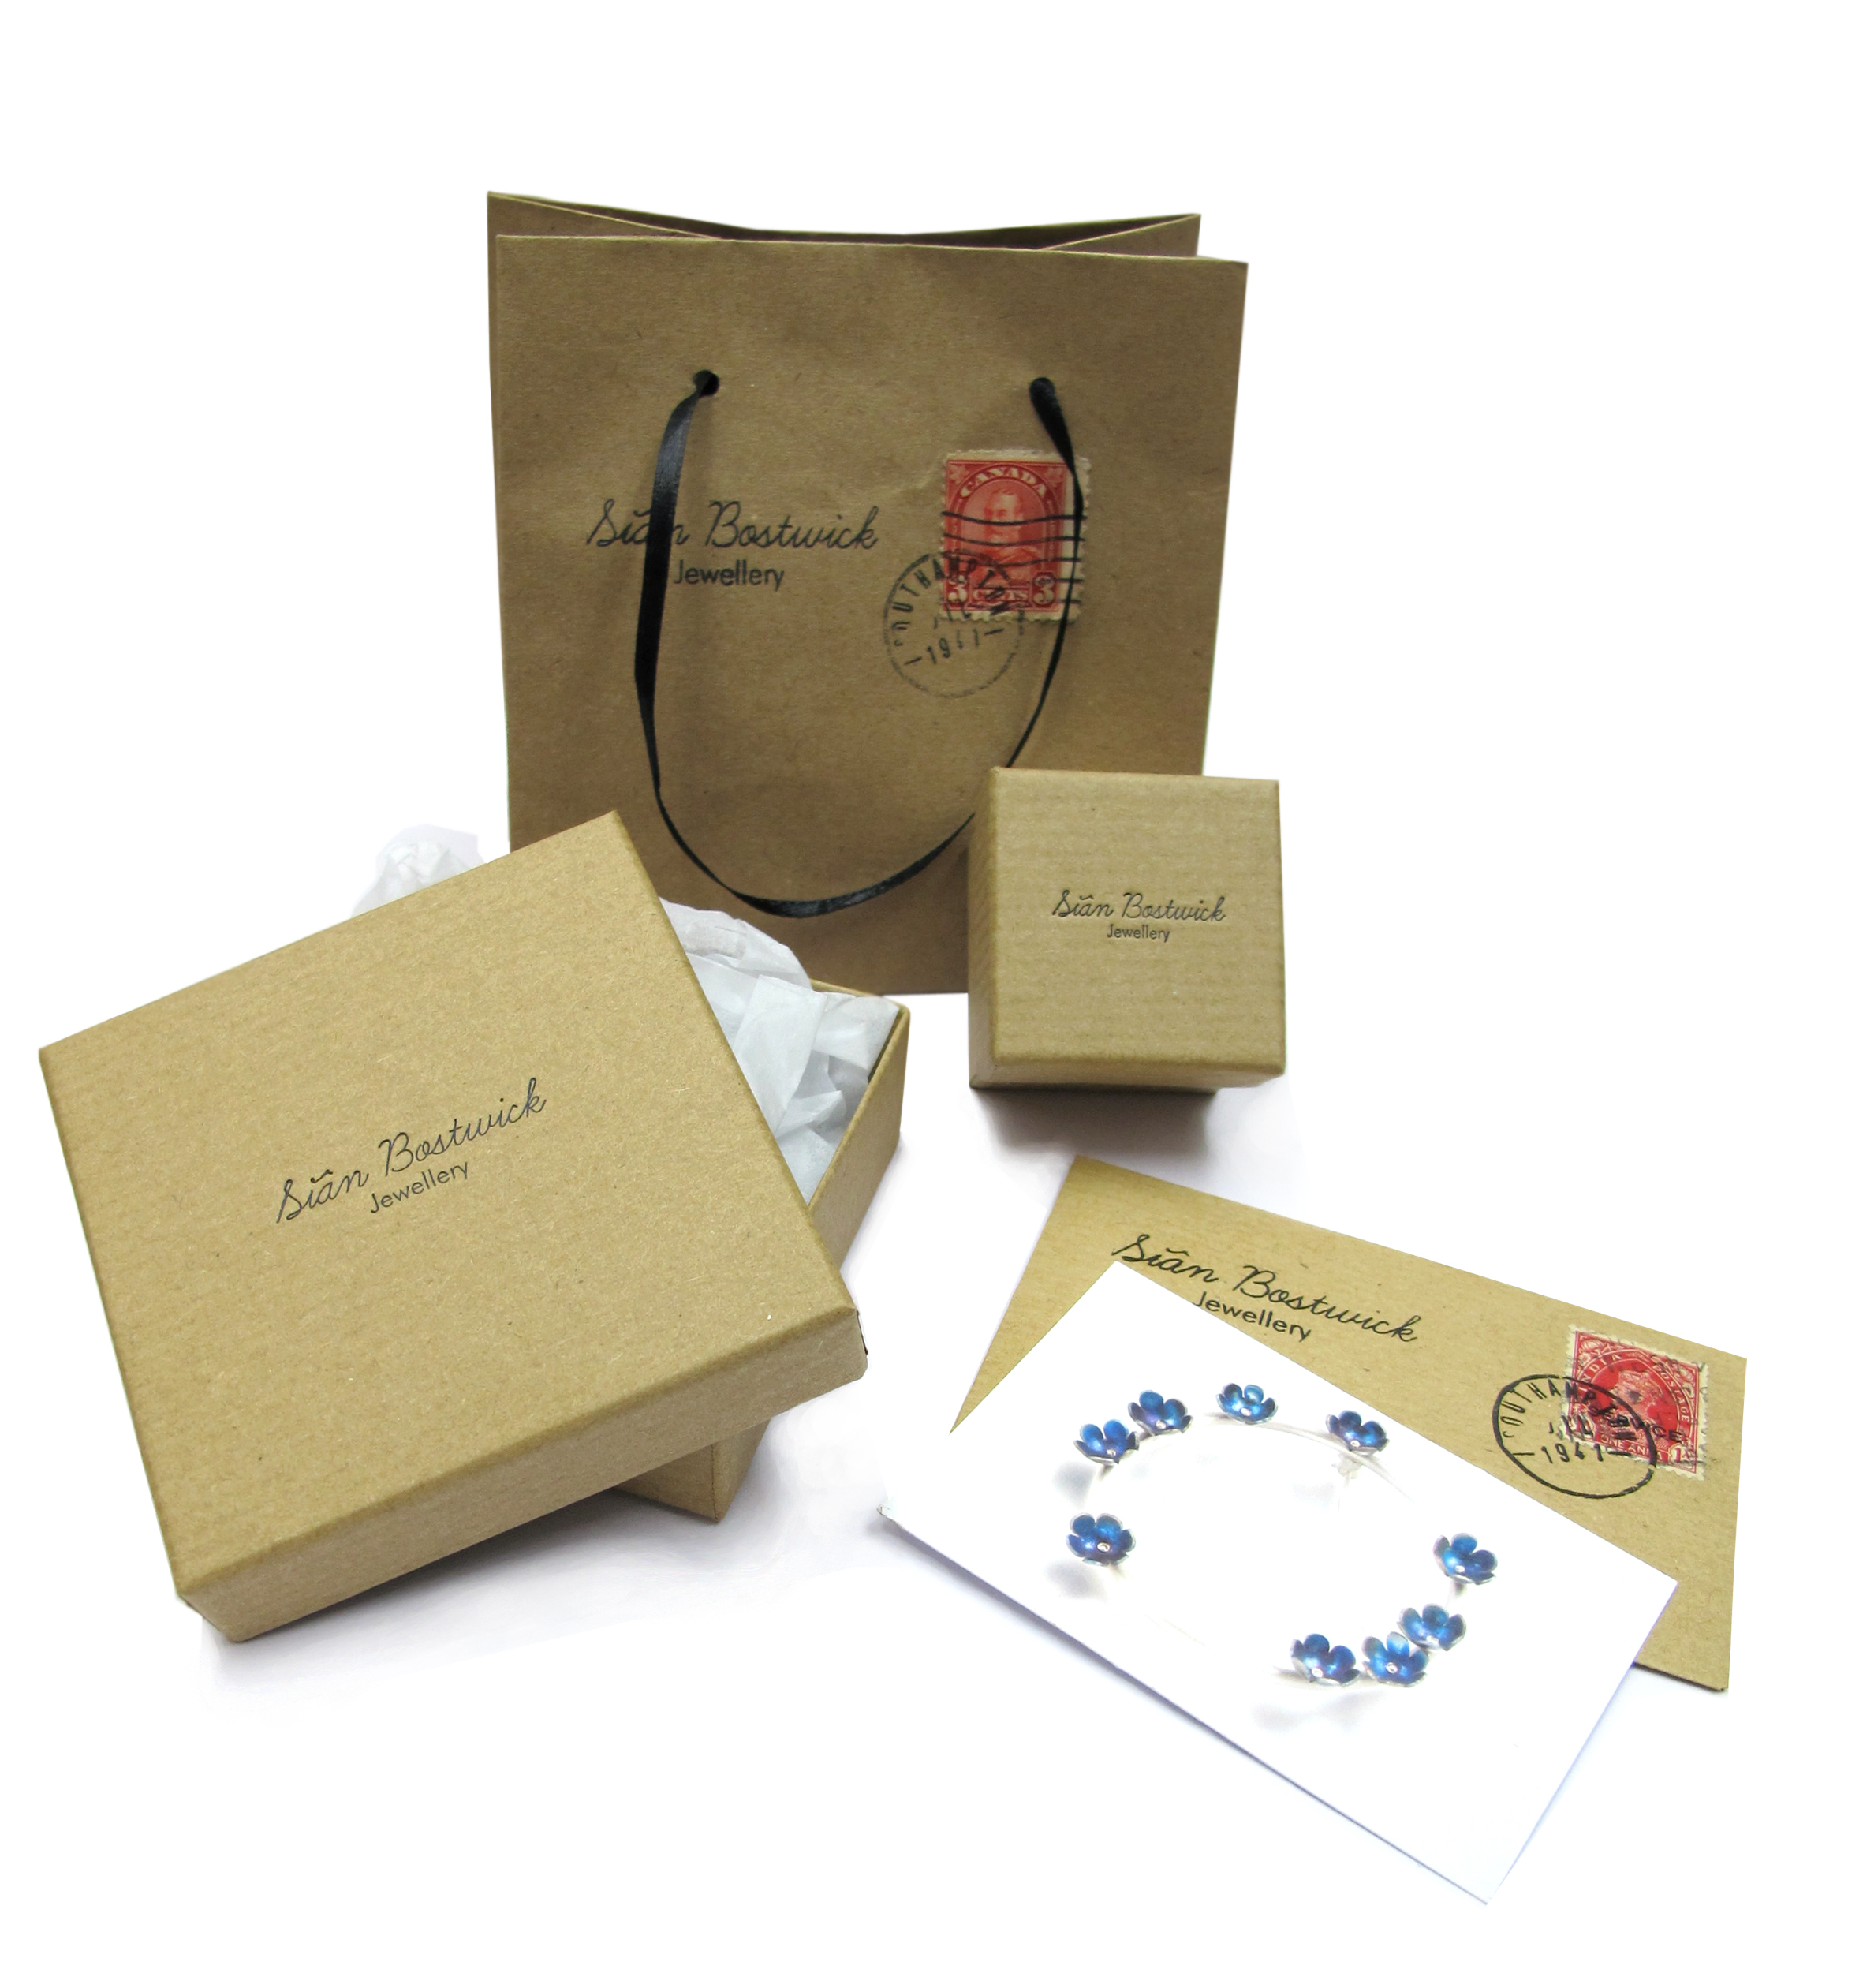 Sian Bostwick Jewellery packaging